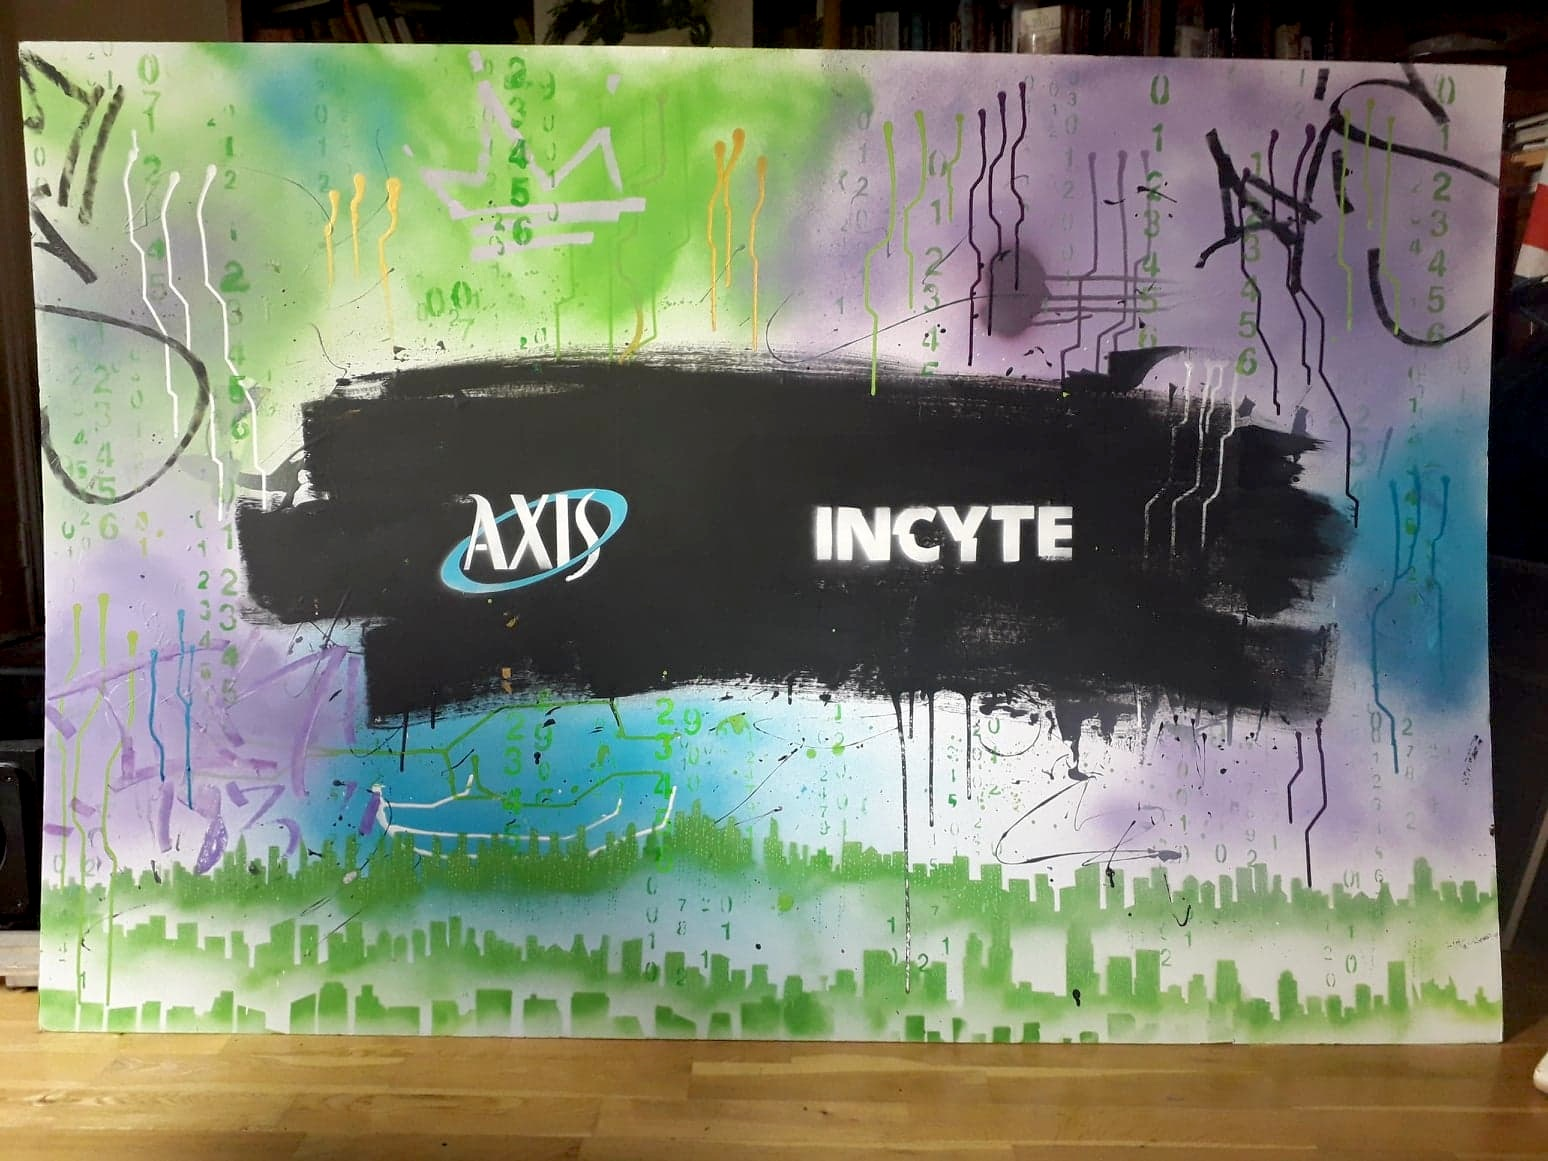 AXIS Cyber Securities event mural